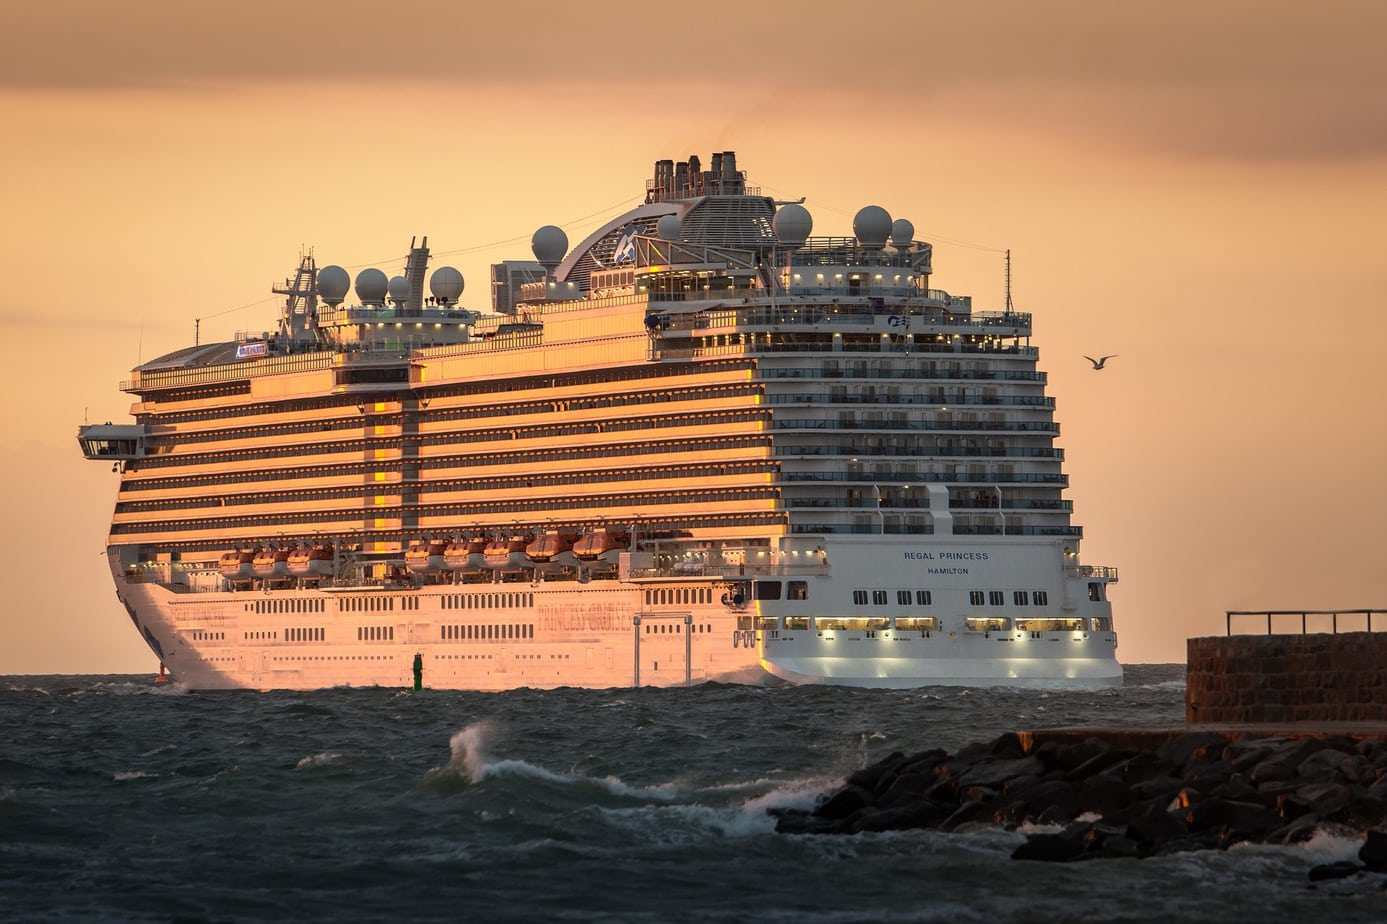 Cruise Stocks Are A Bargain Despite The Challenges